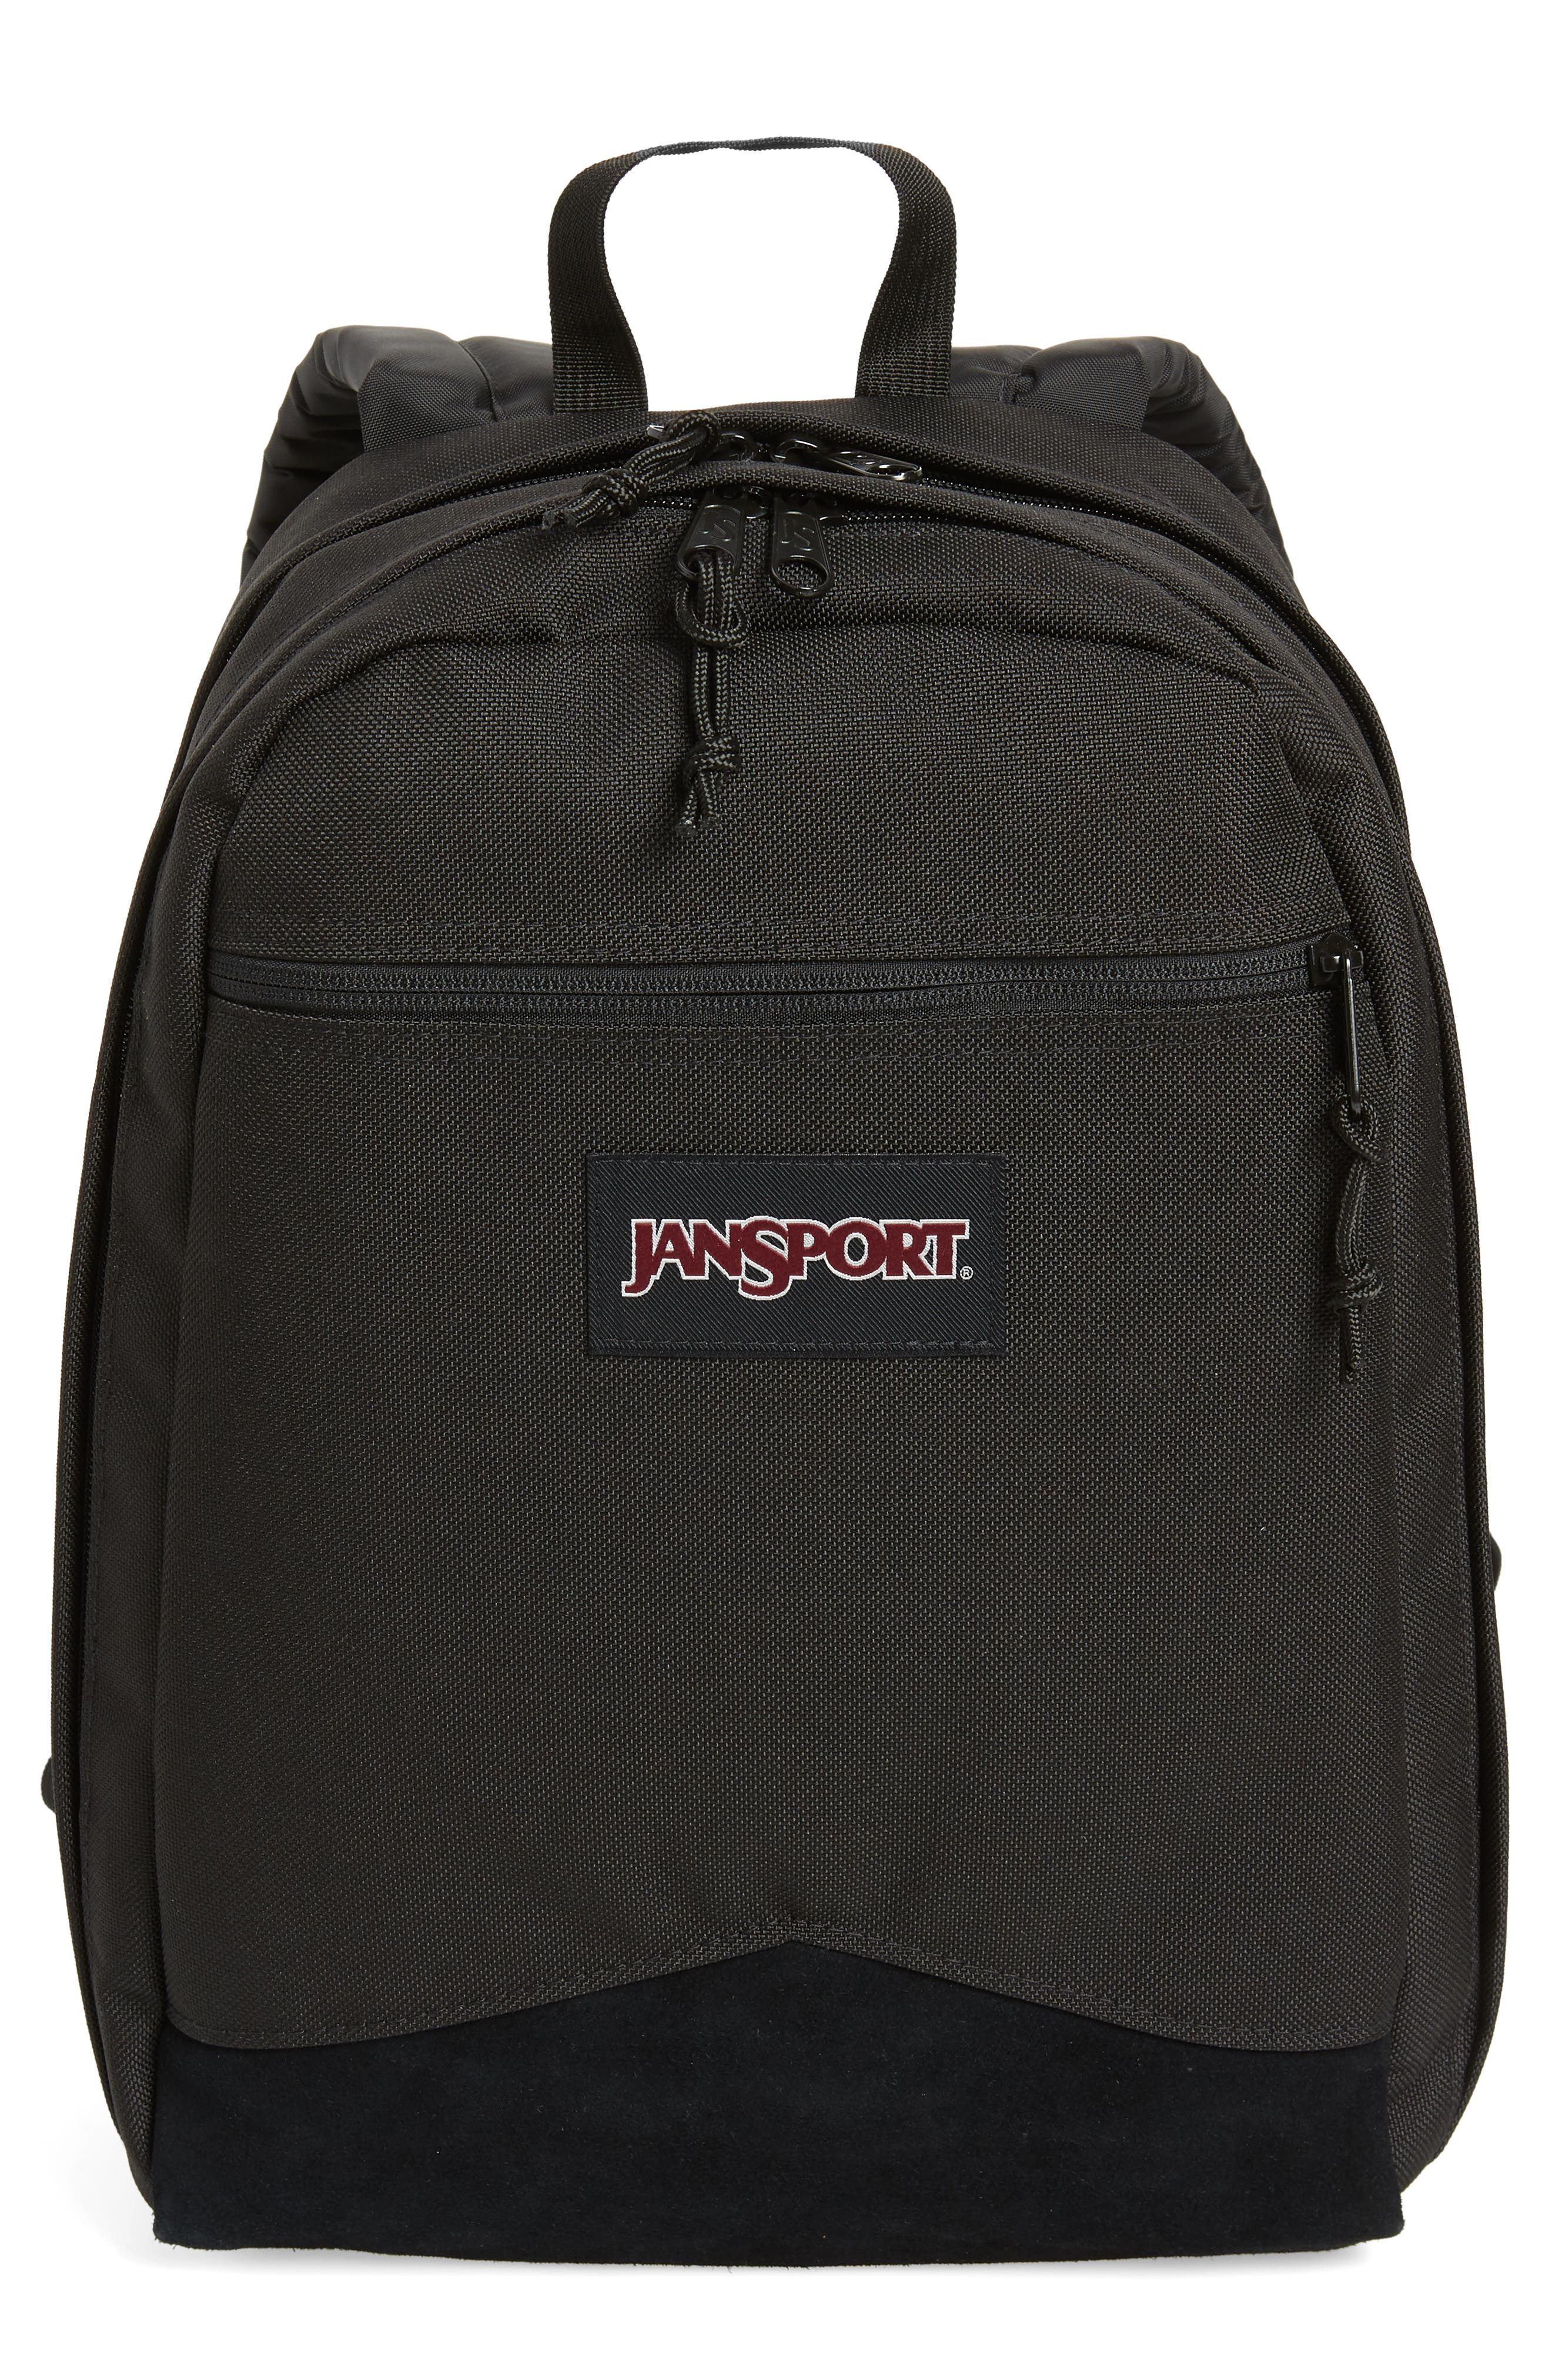 Freedom Backpack,                             Main thumbnail 1, color,                             BLACK